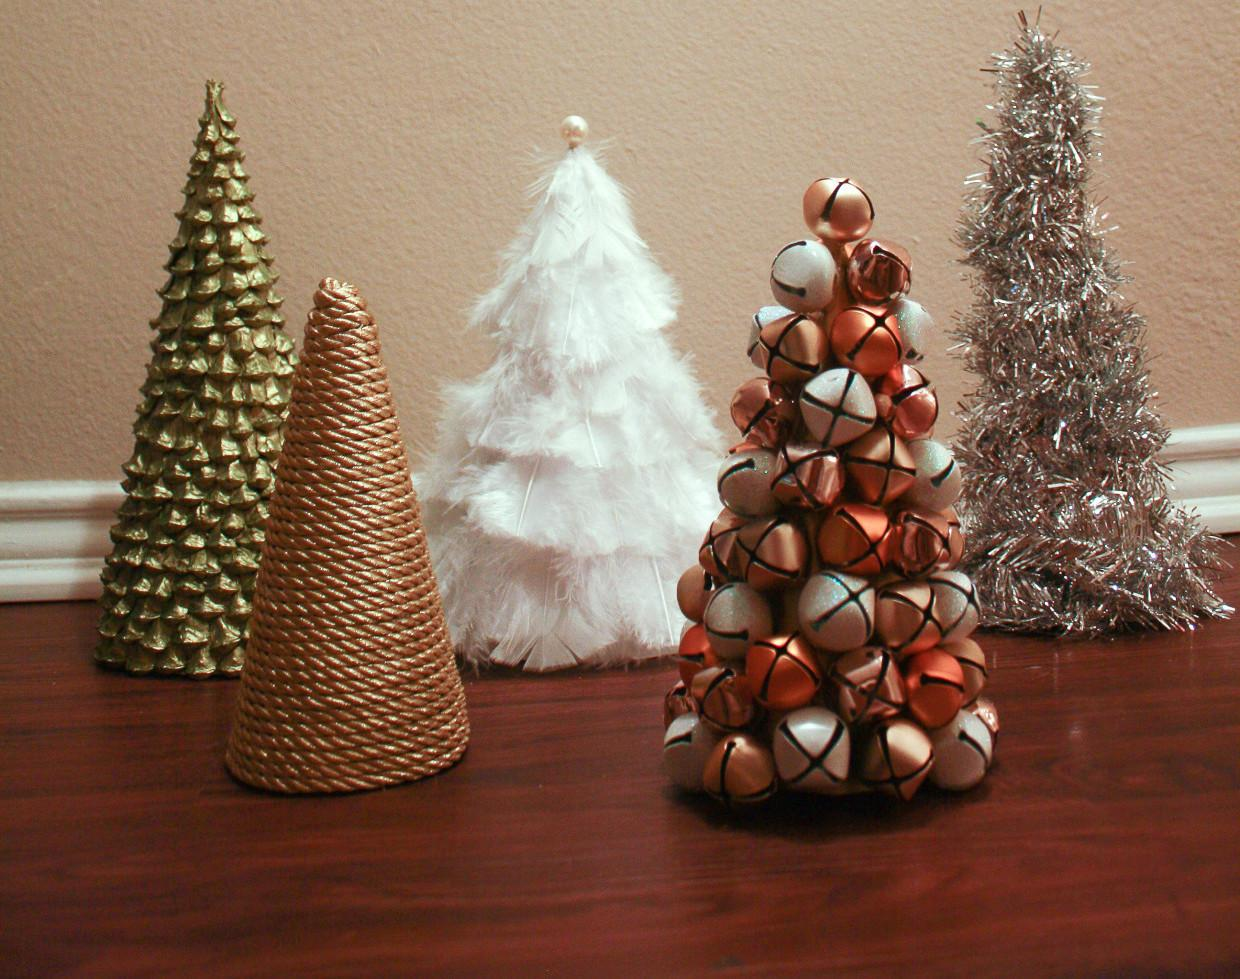 Diy Mini Christmas Trees Prudent Penny Pincher